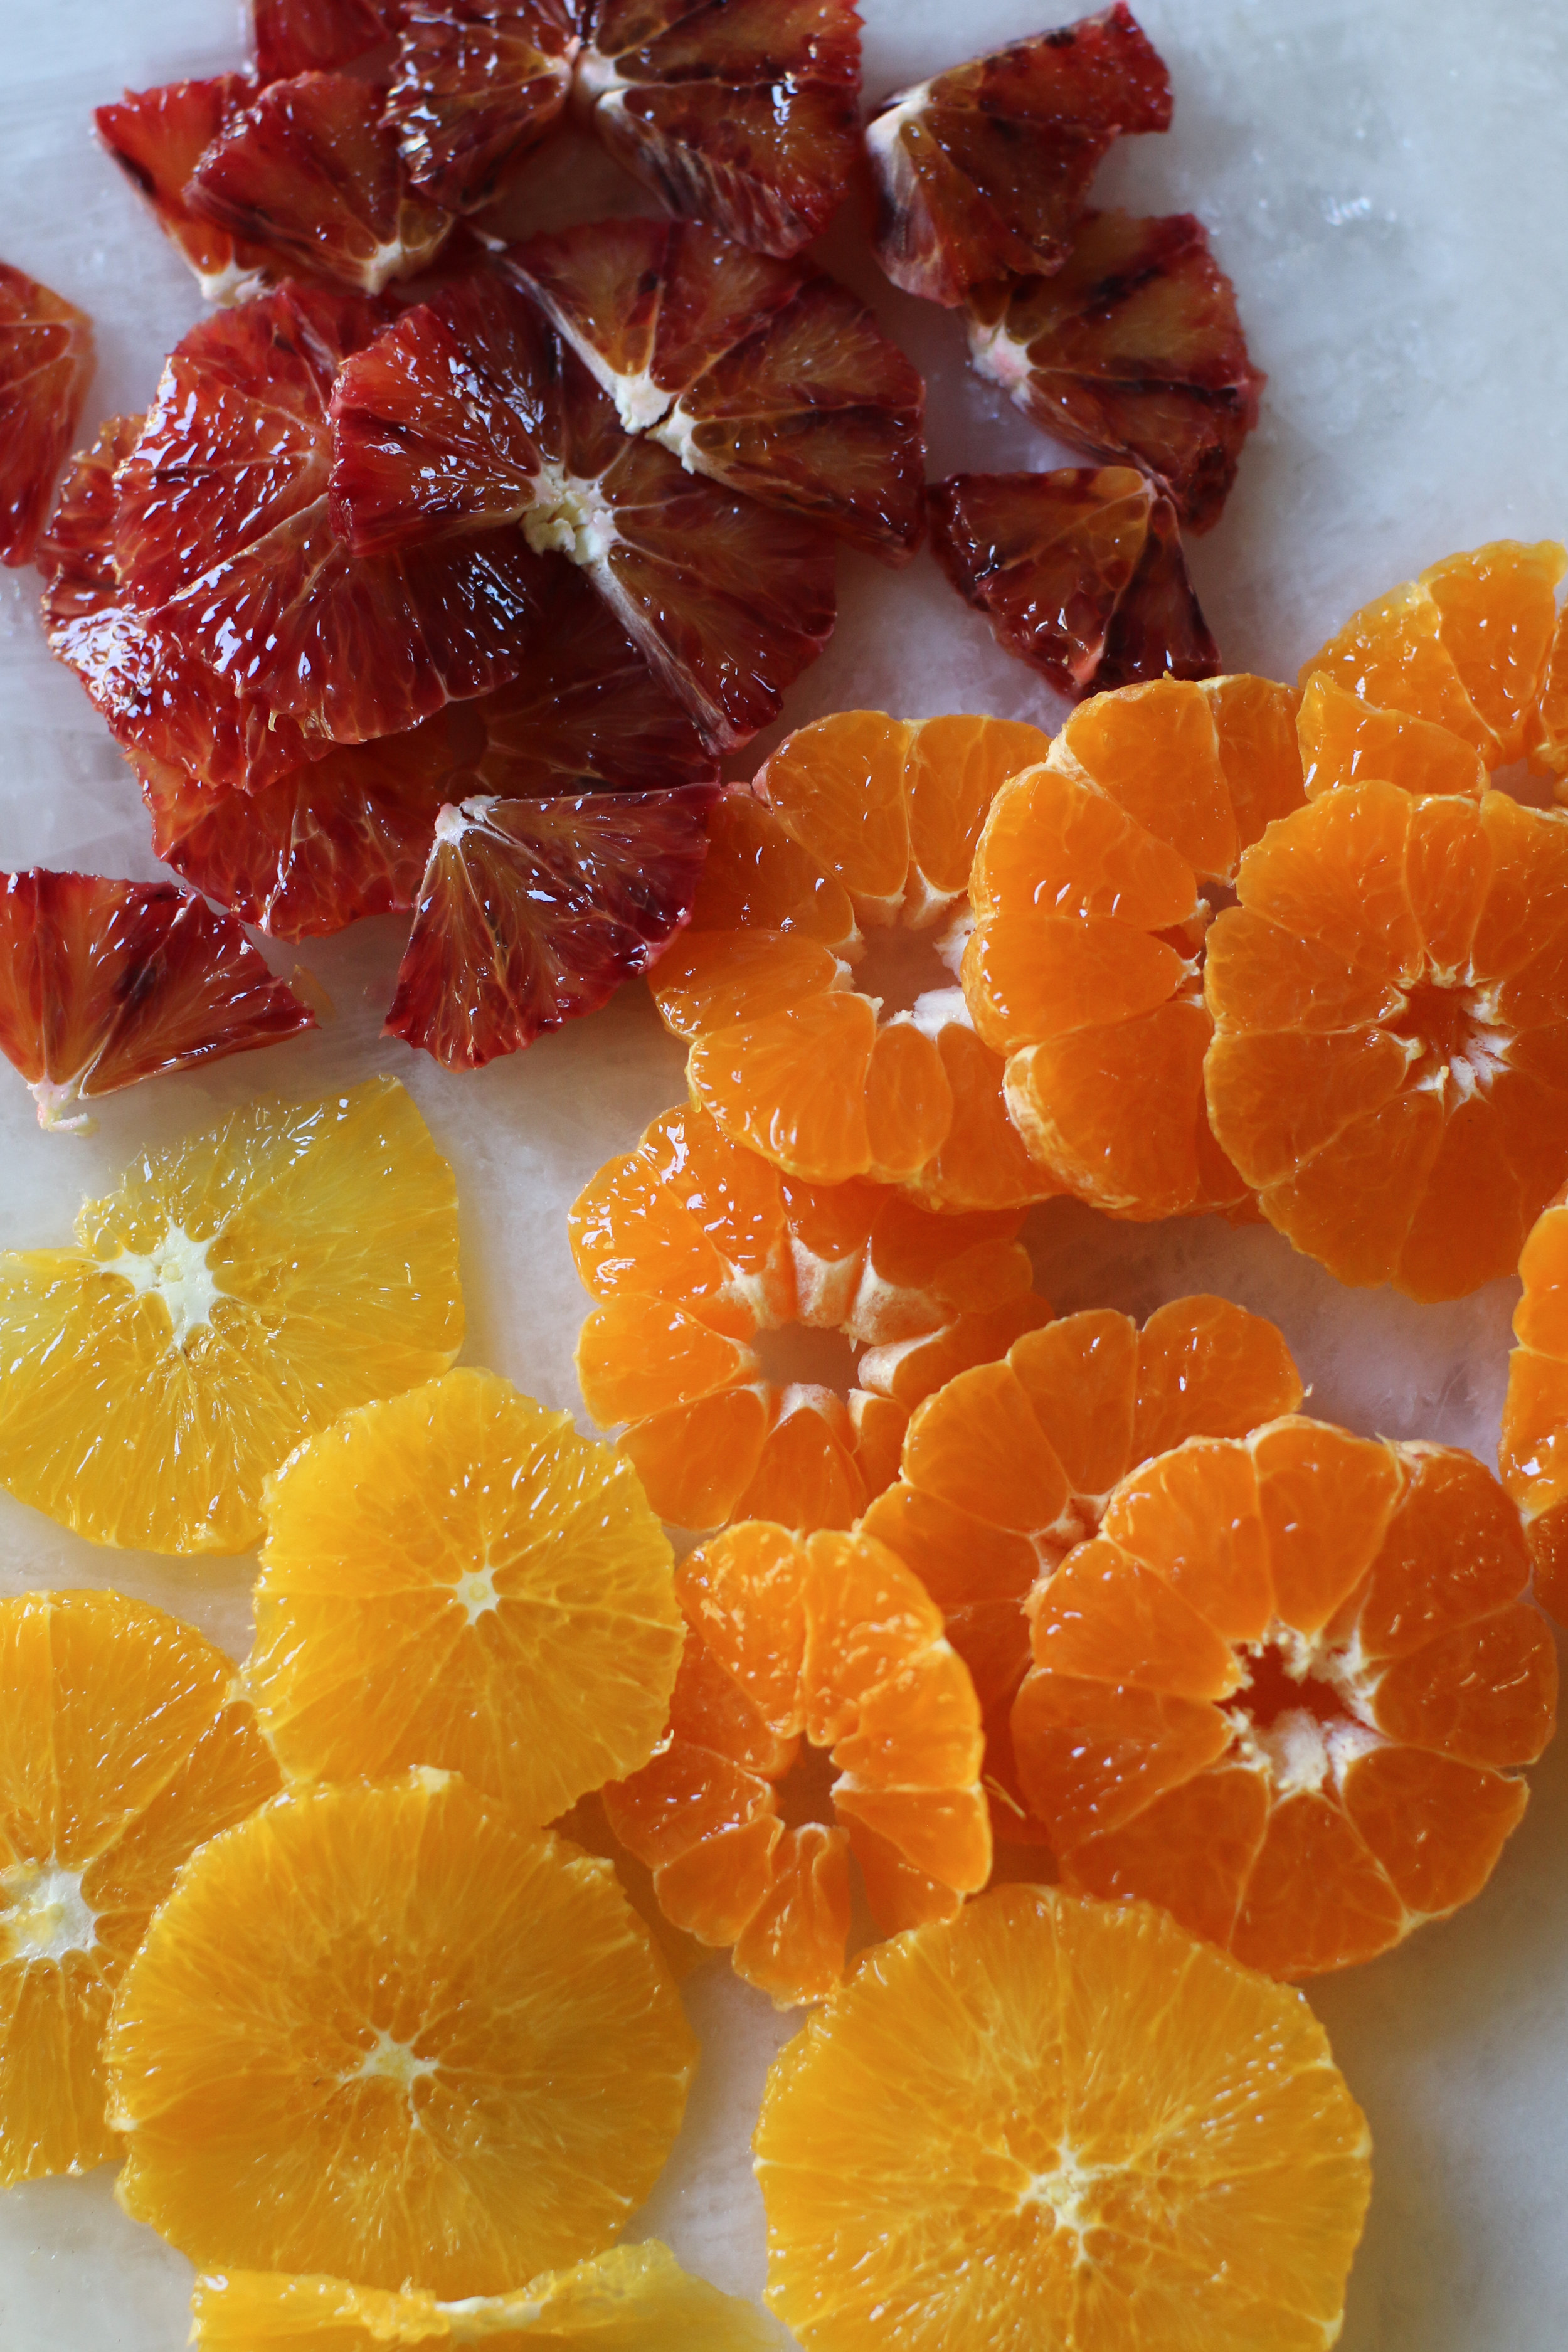 Do you have extra citrus on hand? Try the following juicy citrus recipes. - Citrus Pickled Shrimp, Charred Winter Citrus or Spicy Candied Orange Peel.